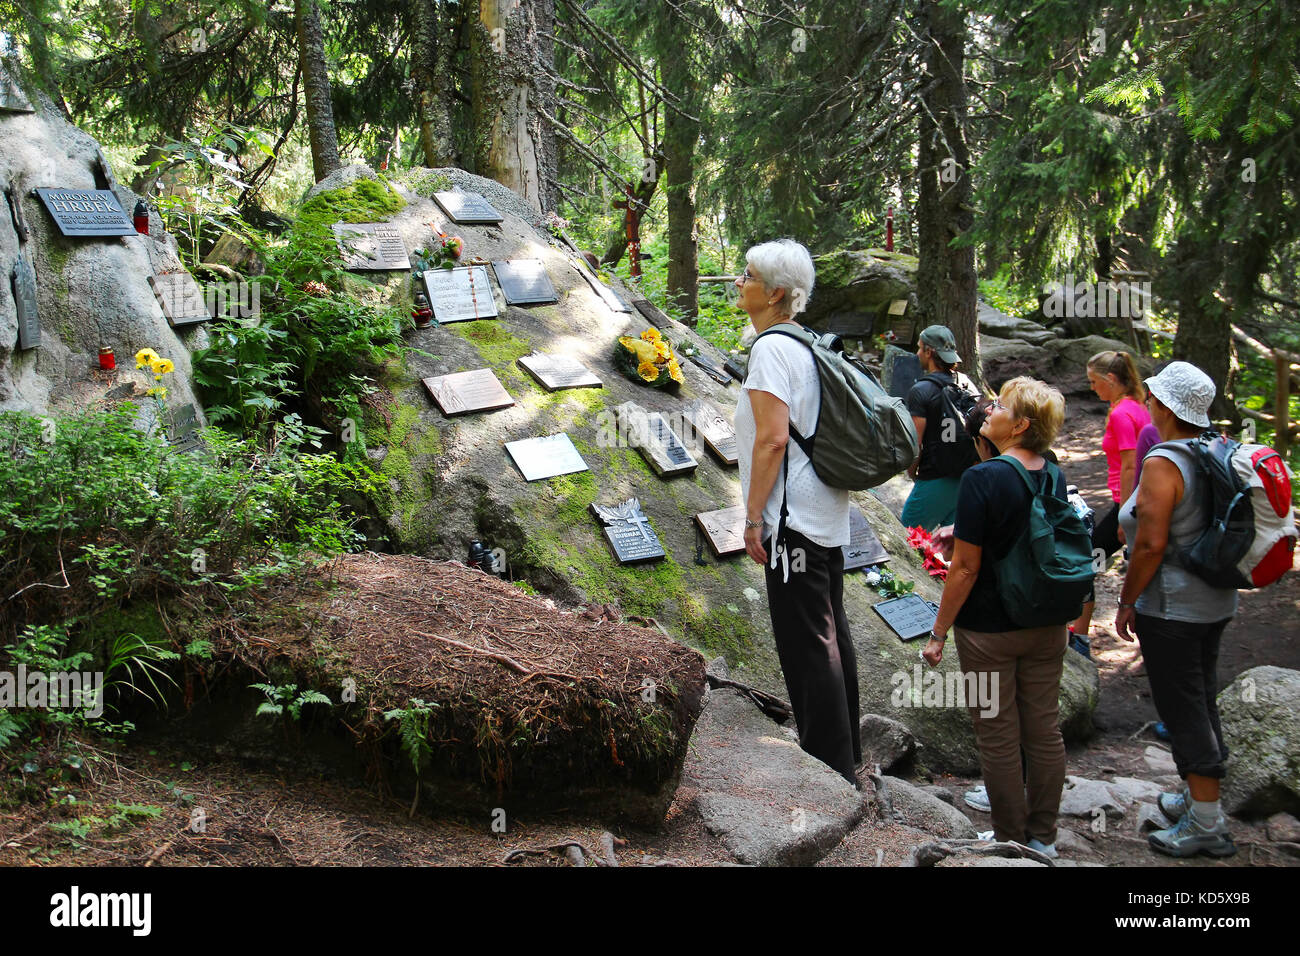 POPRADSKE PLESO, SLOVAKIA - AUGUST 27, 2015: People visit the symbolic cemetery in High Tatras, a memorial to people Stock Photo